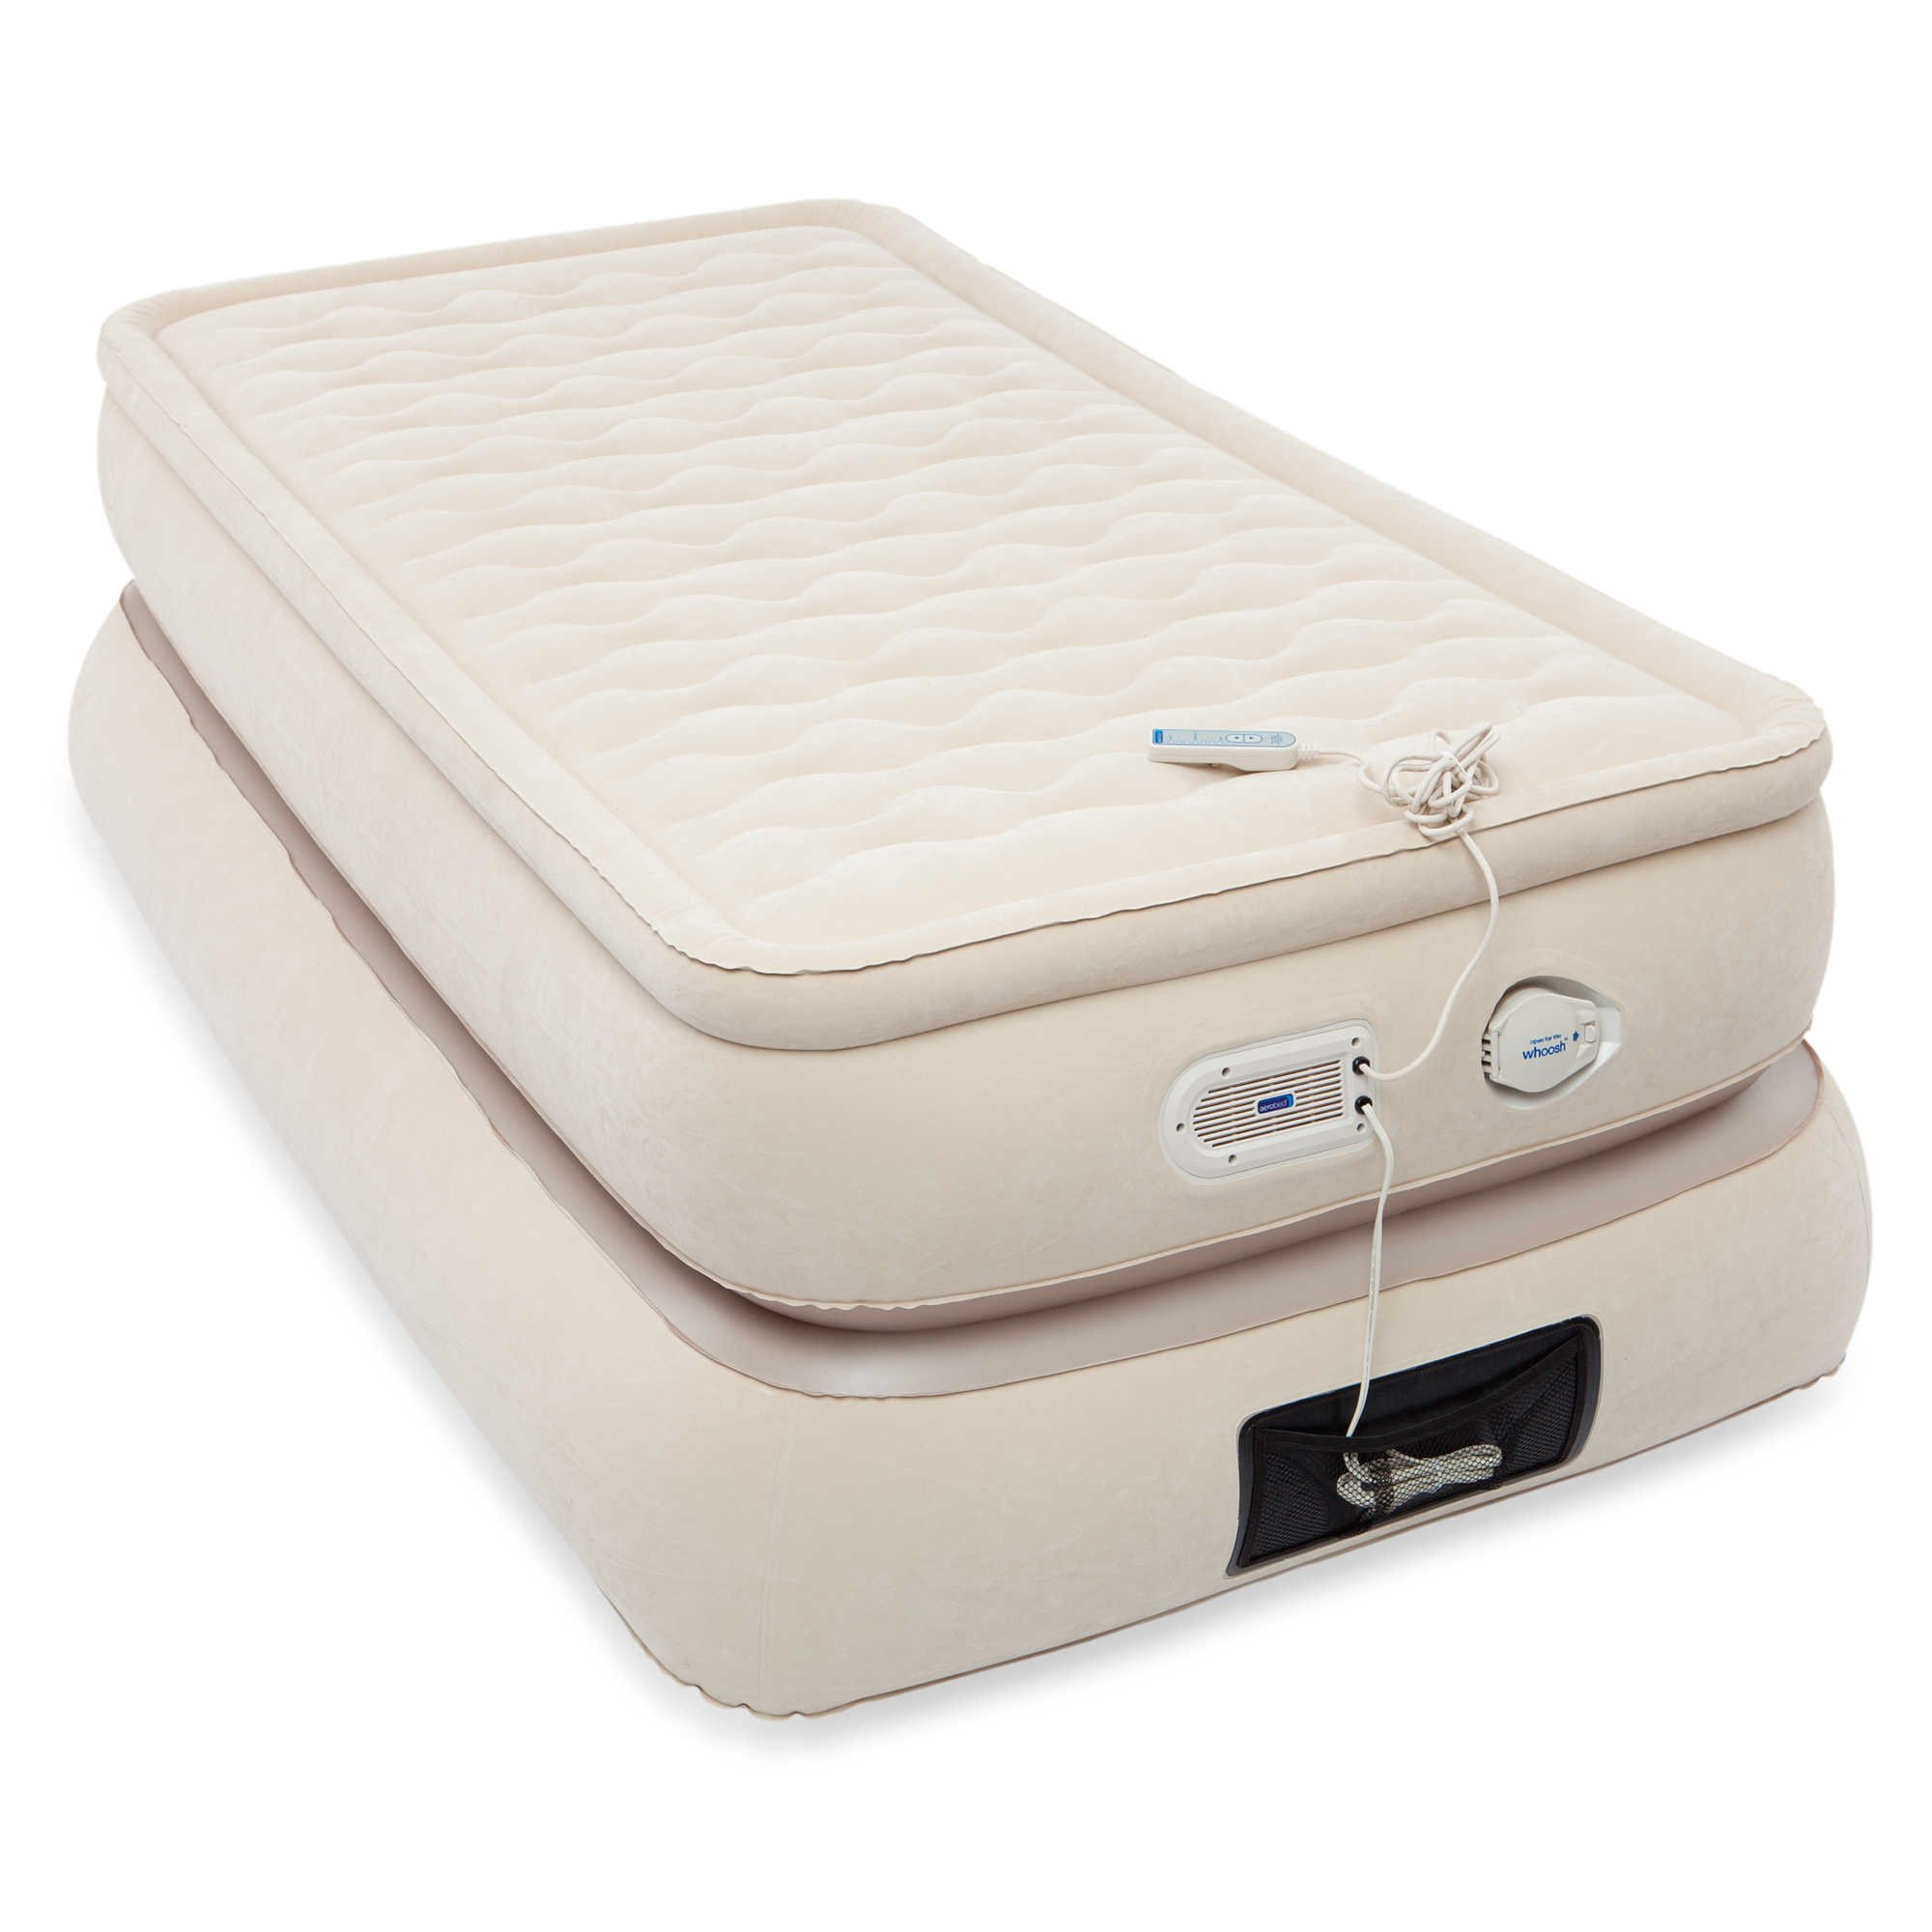 dawn sleep bed boyd chamber mattress build specialty with form air night pure pump